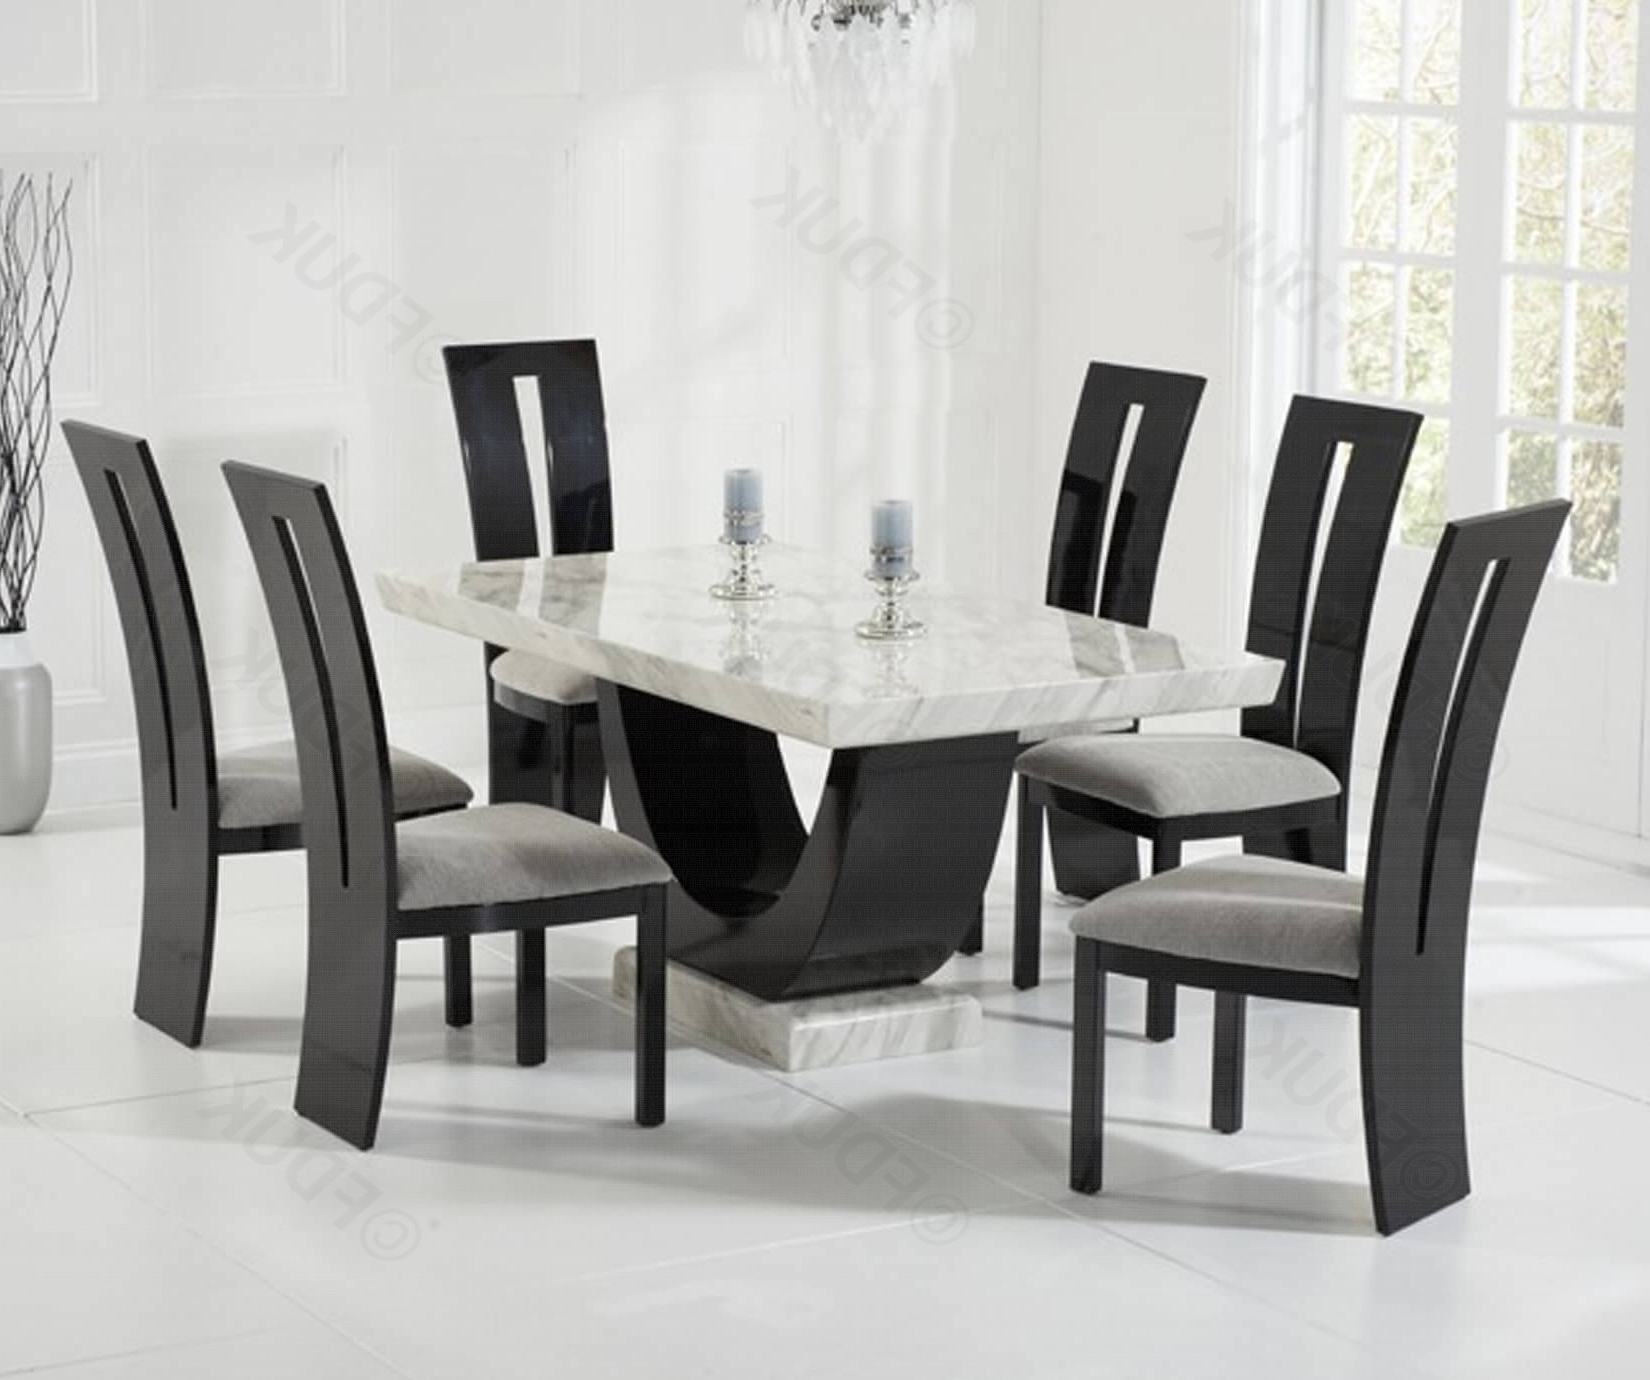 Cream And Black Constituted Marble Dining Set Within 2017 Marble Dining Chairs (View 11 of 25)